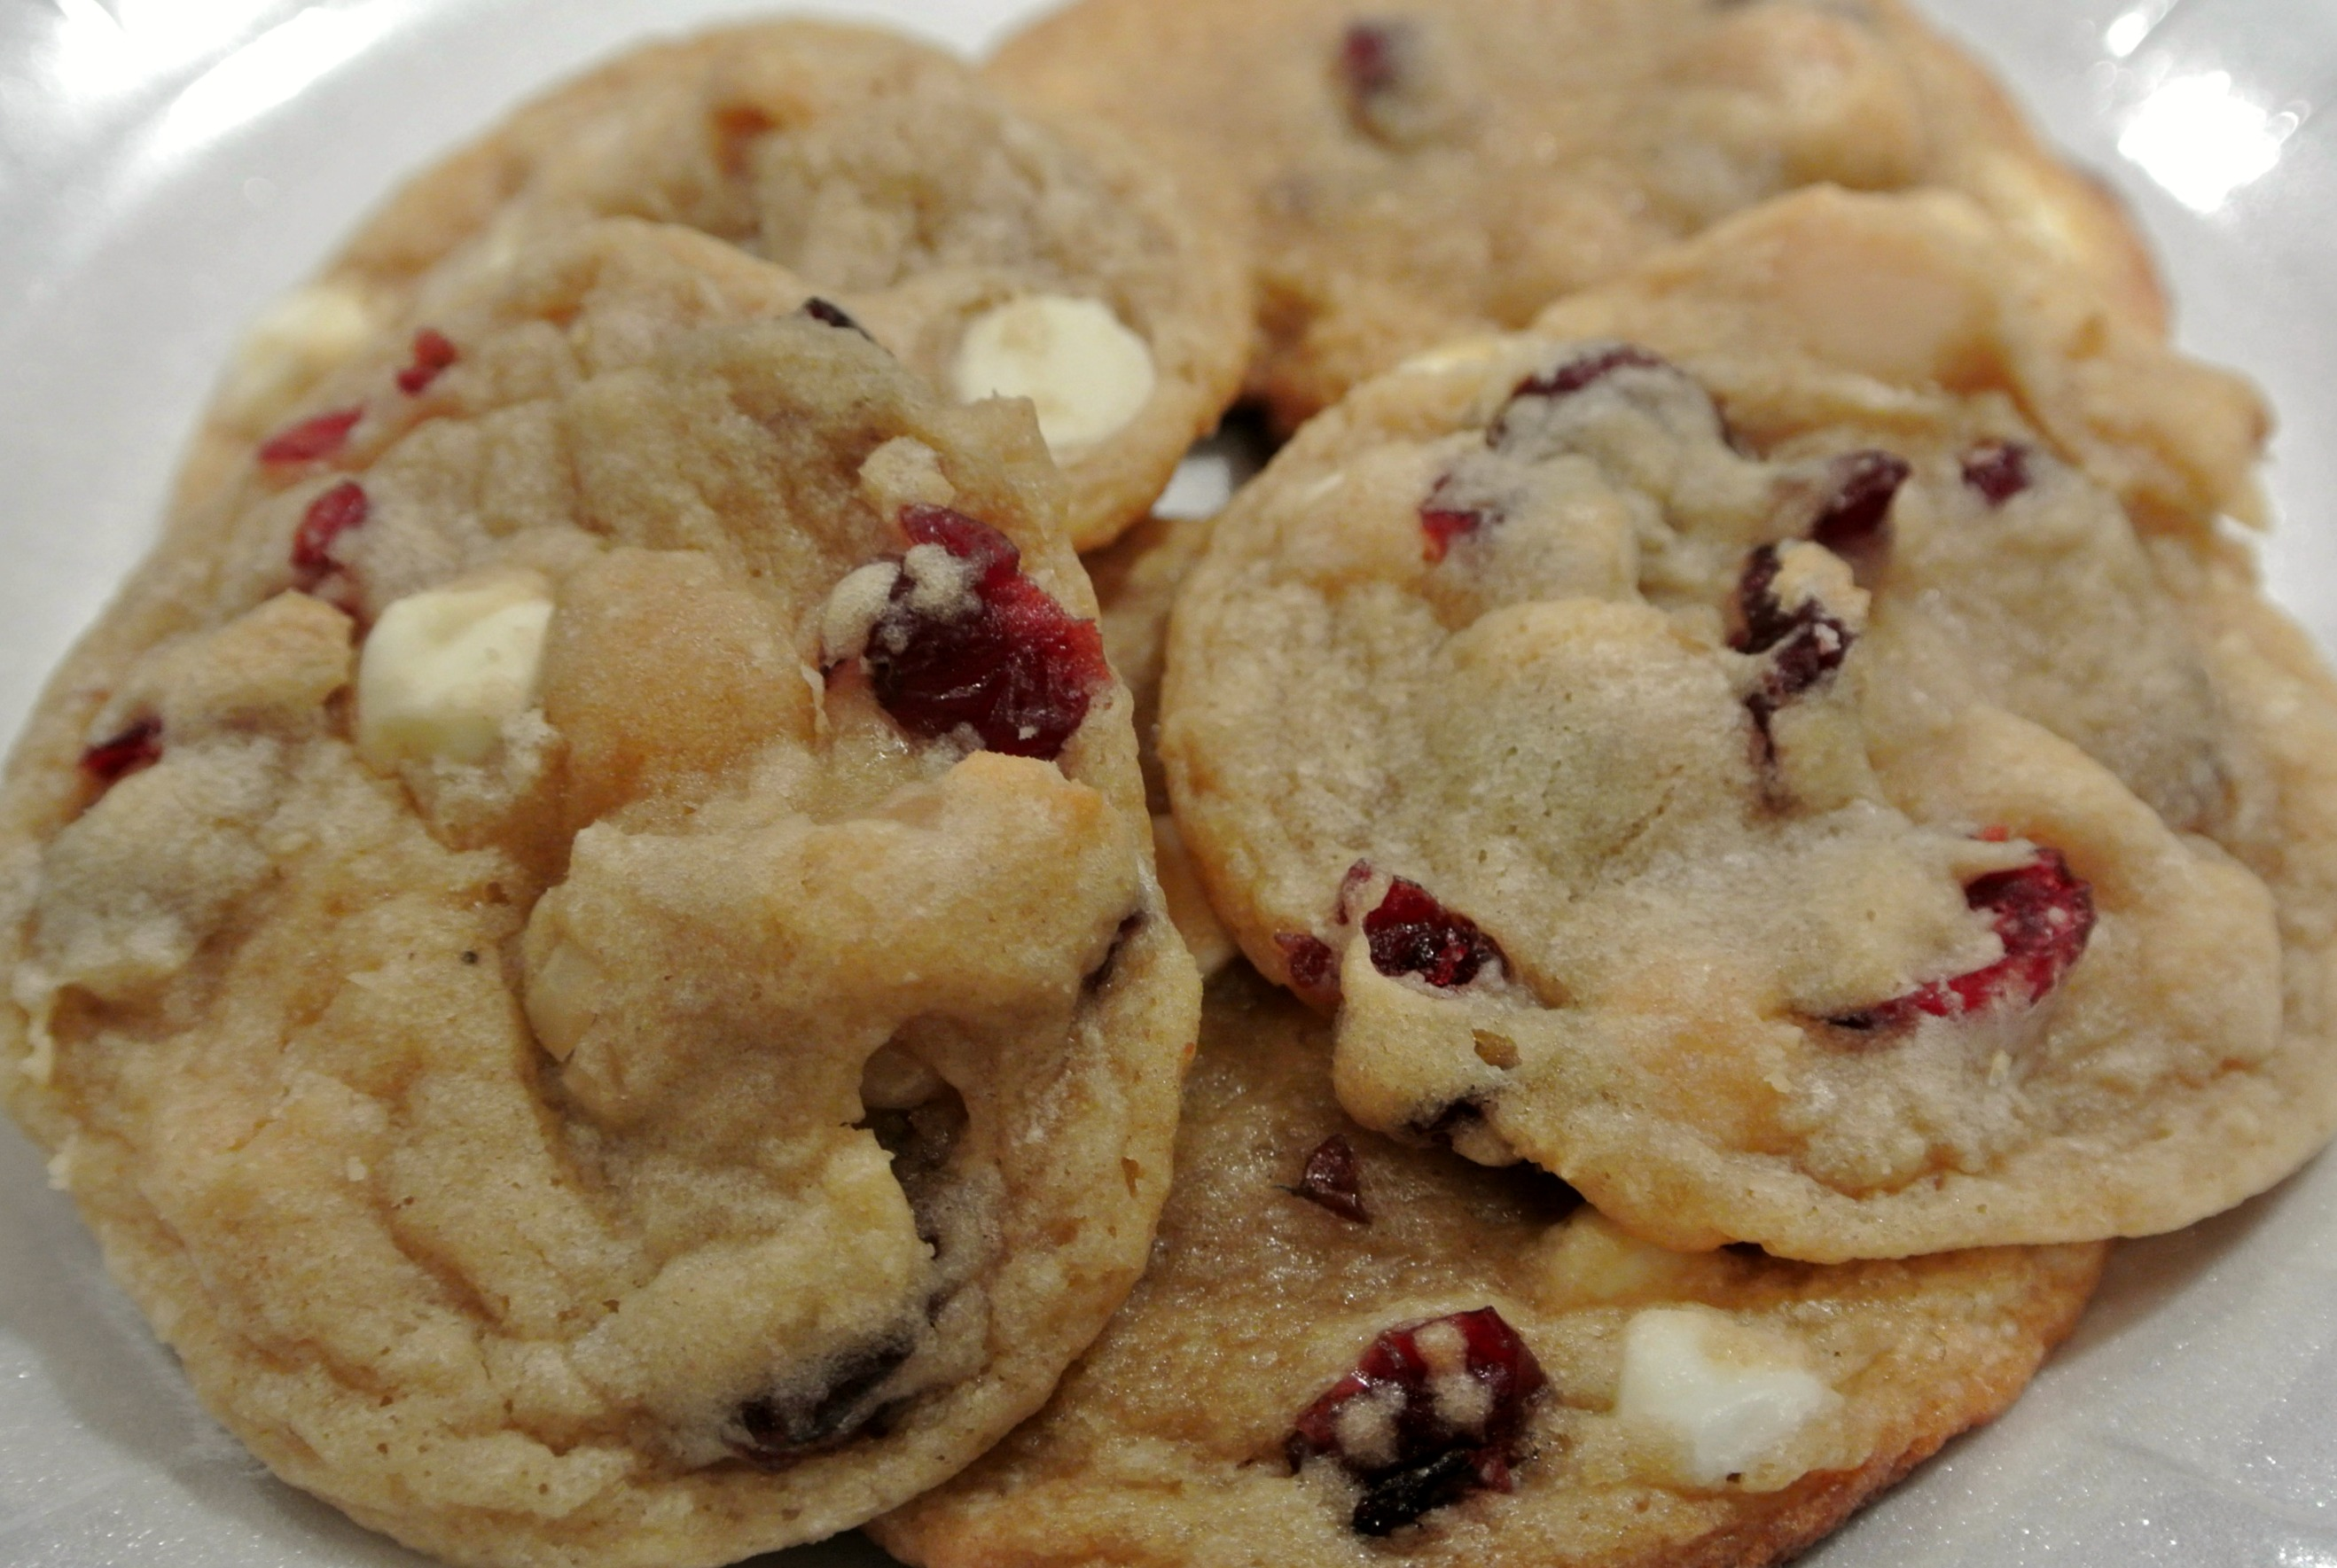 ... this recipe and added the macadamia nuts for good measure